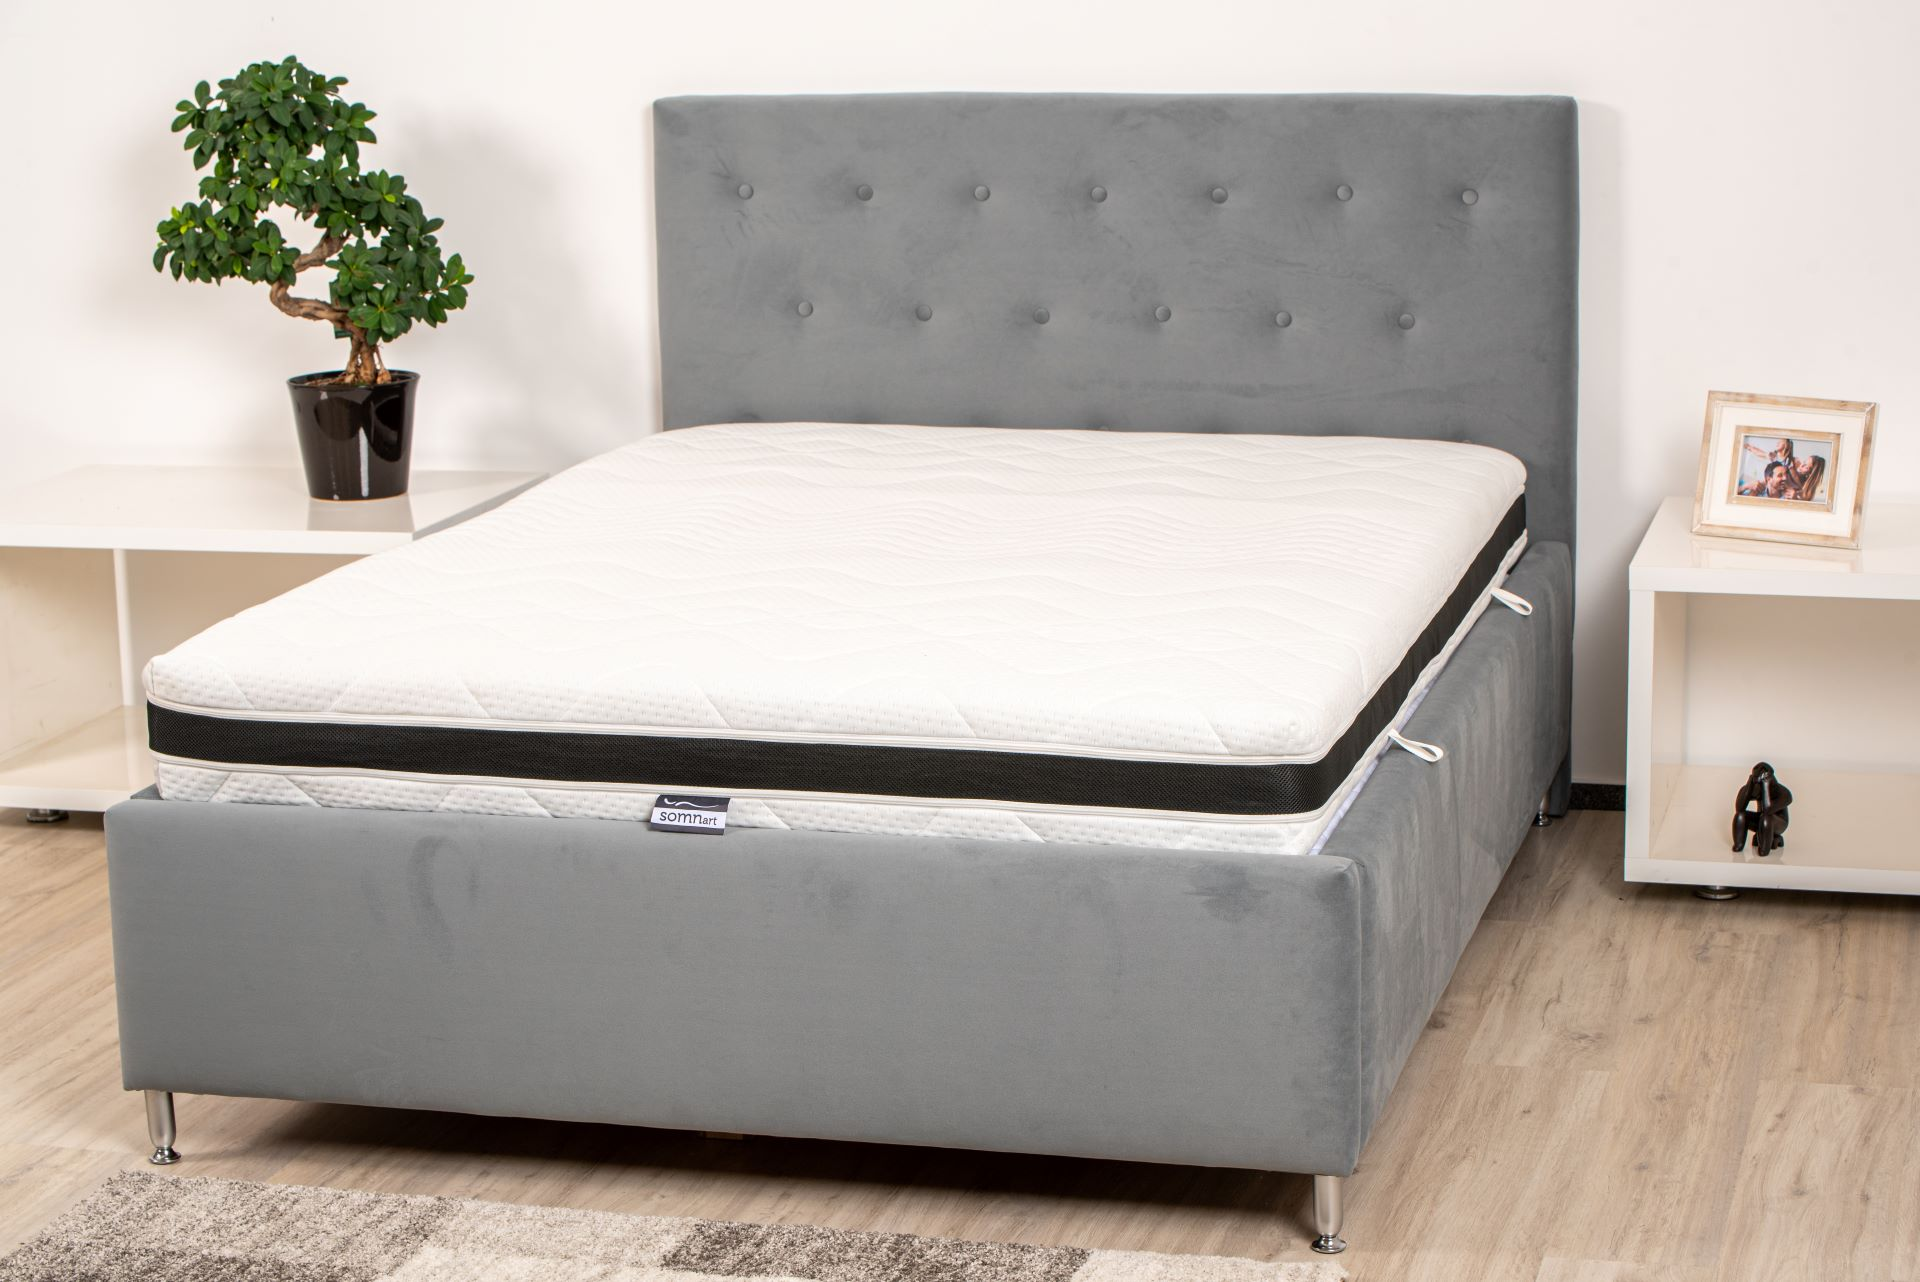 Saltea Somnart Multilayer Supreme Confort - 90x200 cm